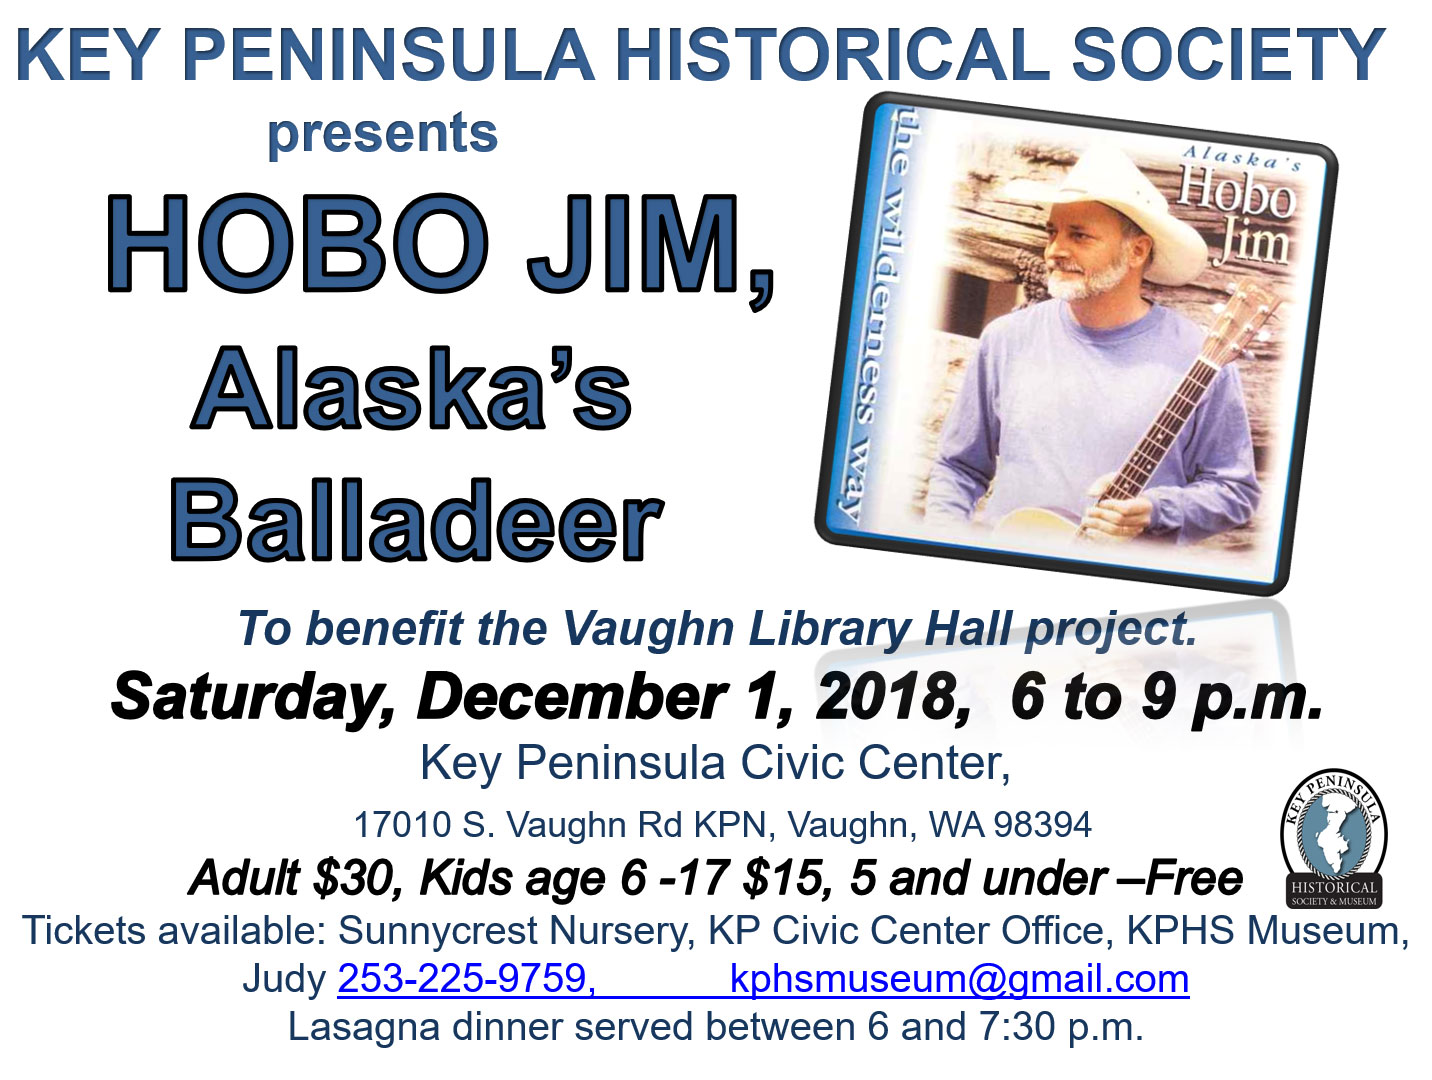 HOBO Jim concert KPHS Saturday December 1st 2018